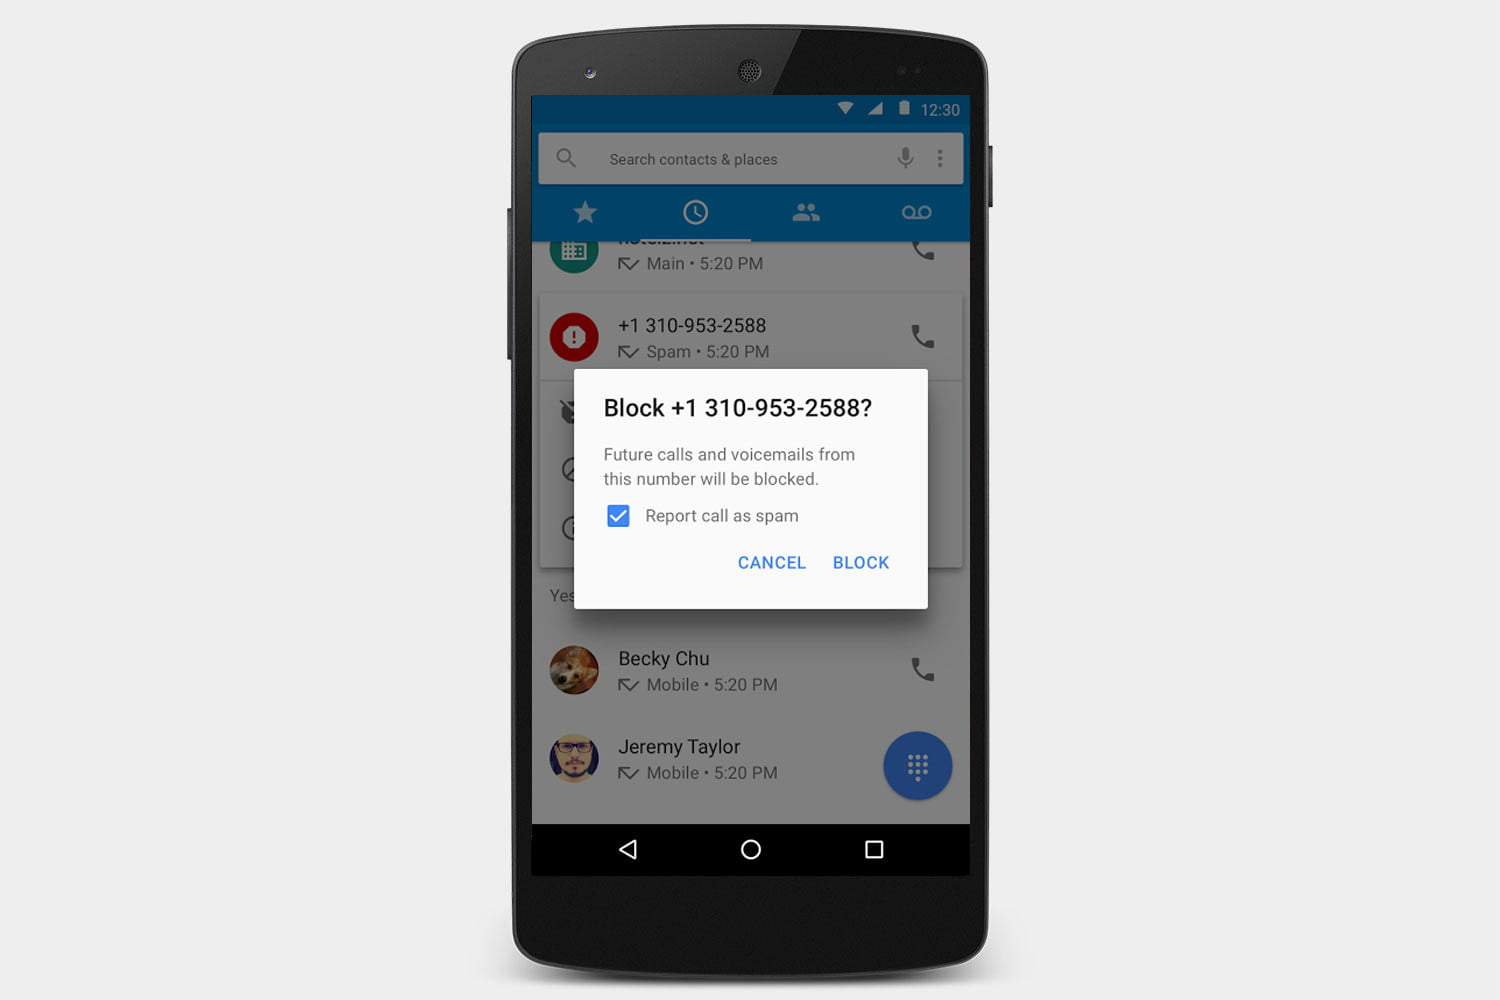 Phone How To Block A Phone Number On My Android how to block calls on an android phone digital trends blocking a pixel or nexus device marshmallow 6 0